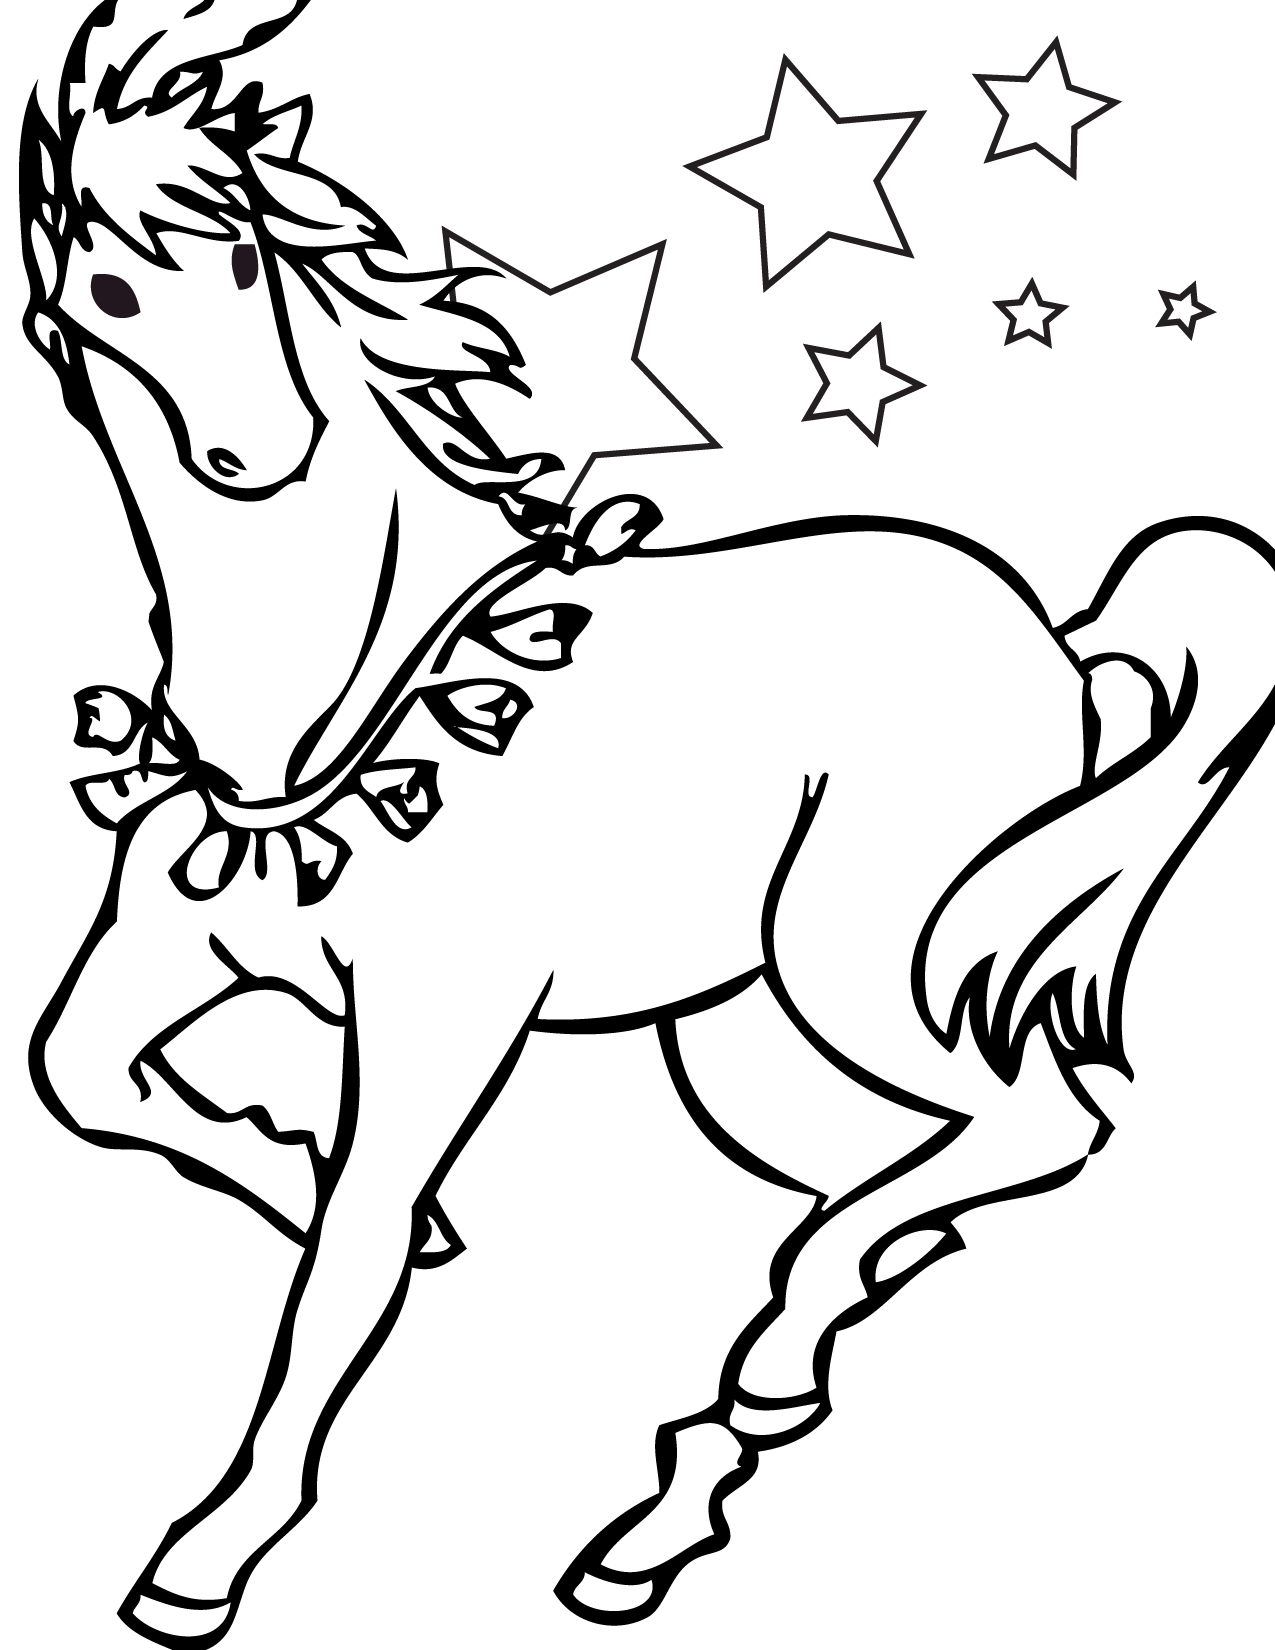 coloring book pages of horses - photo#2